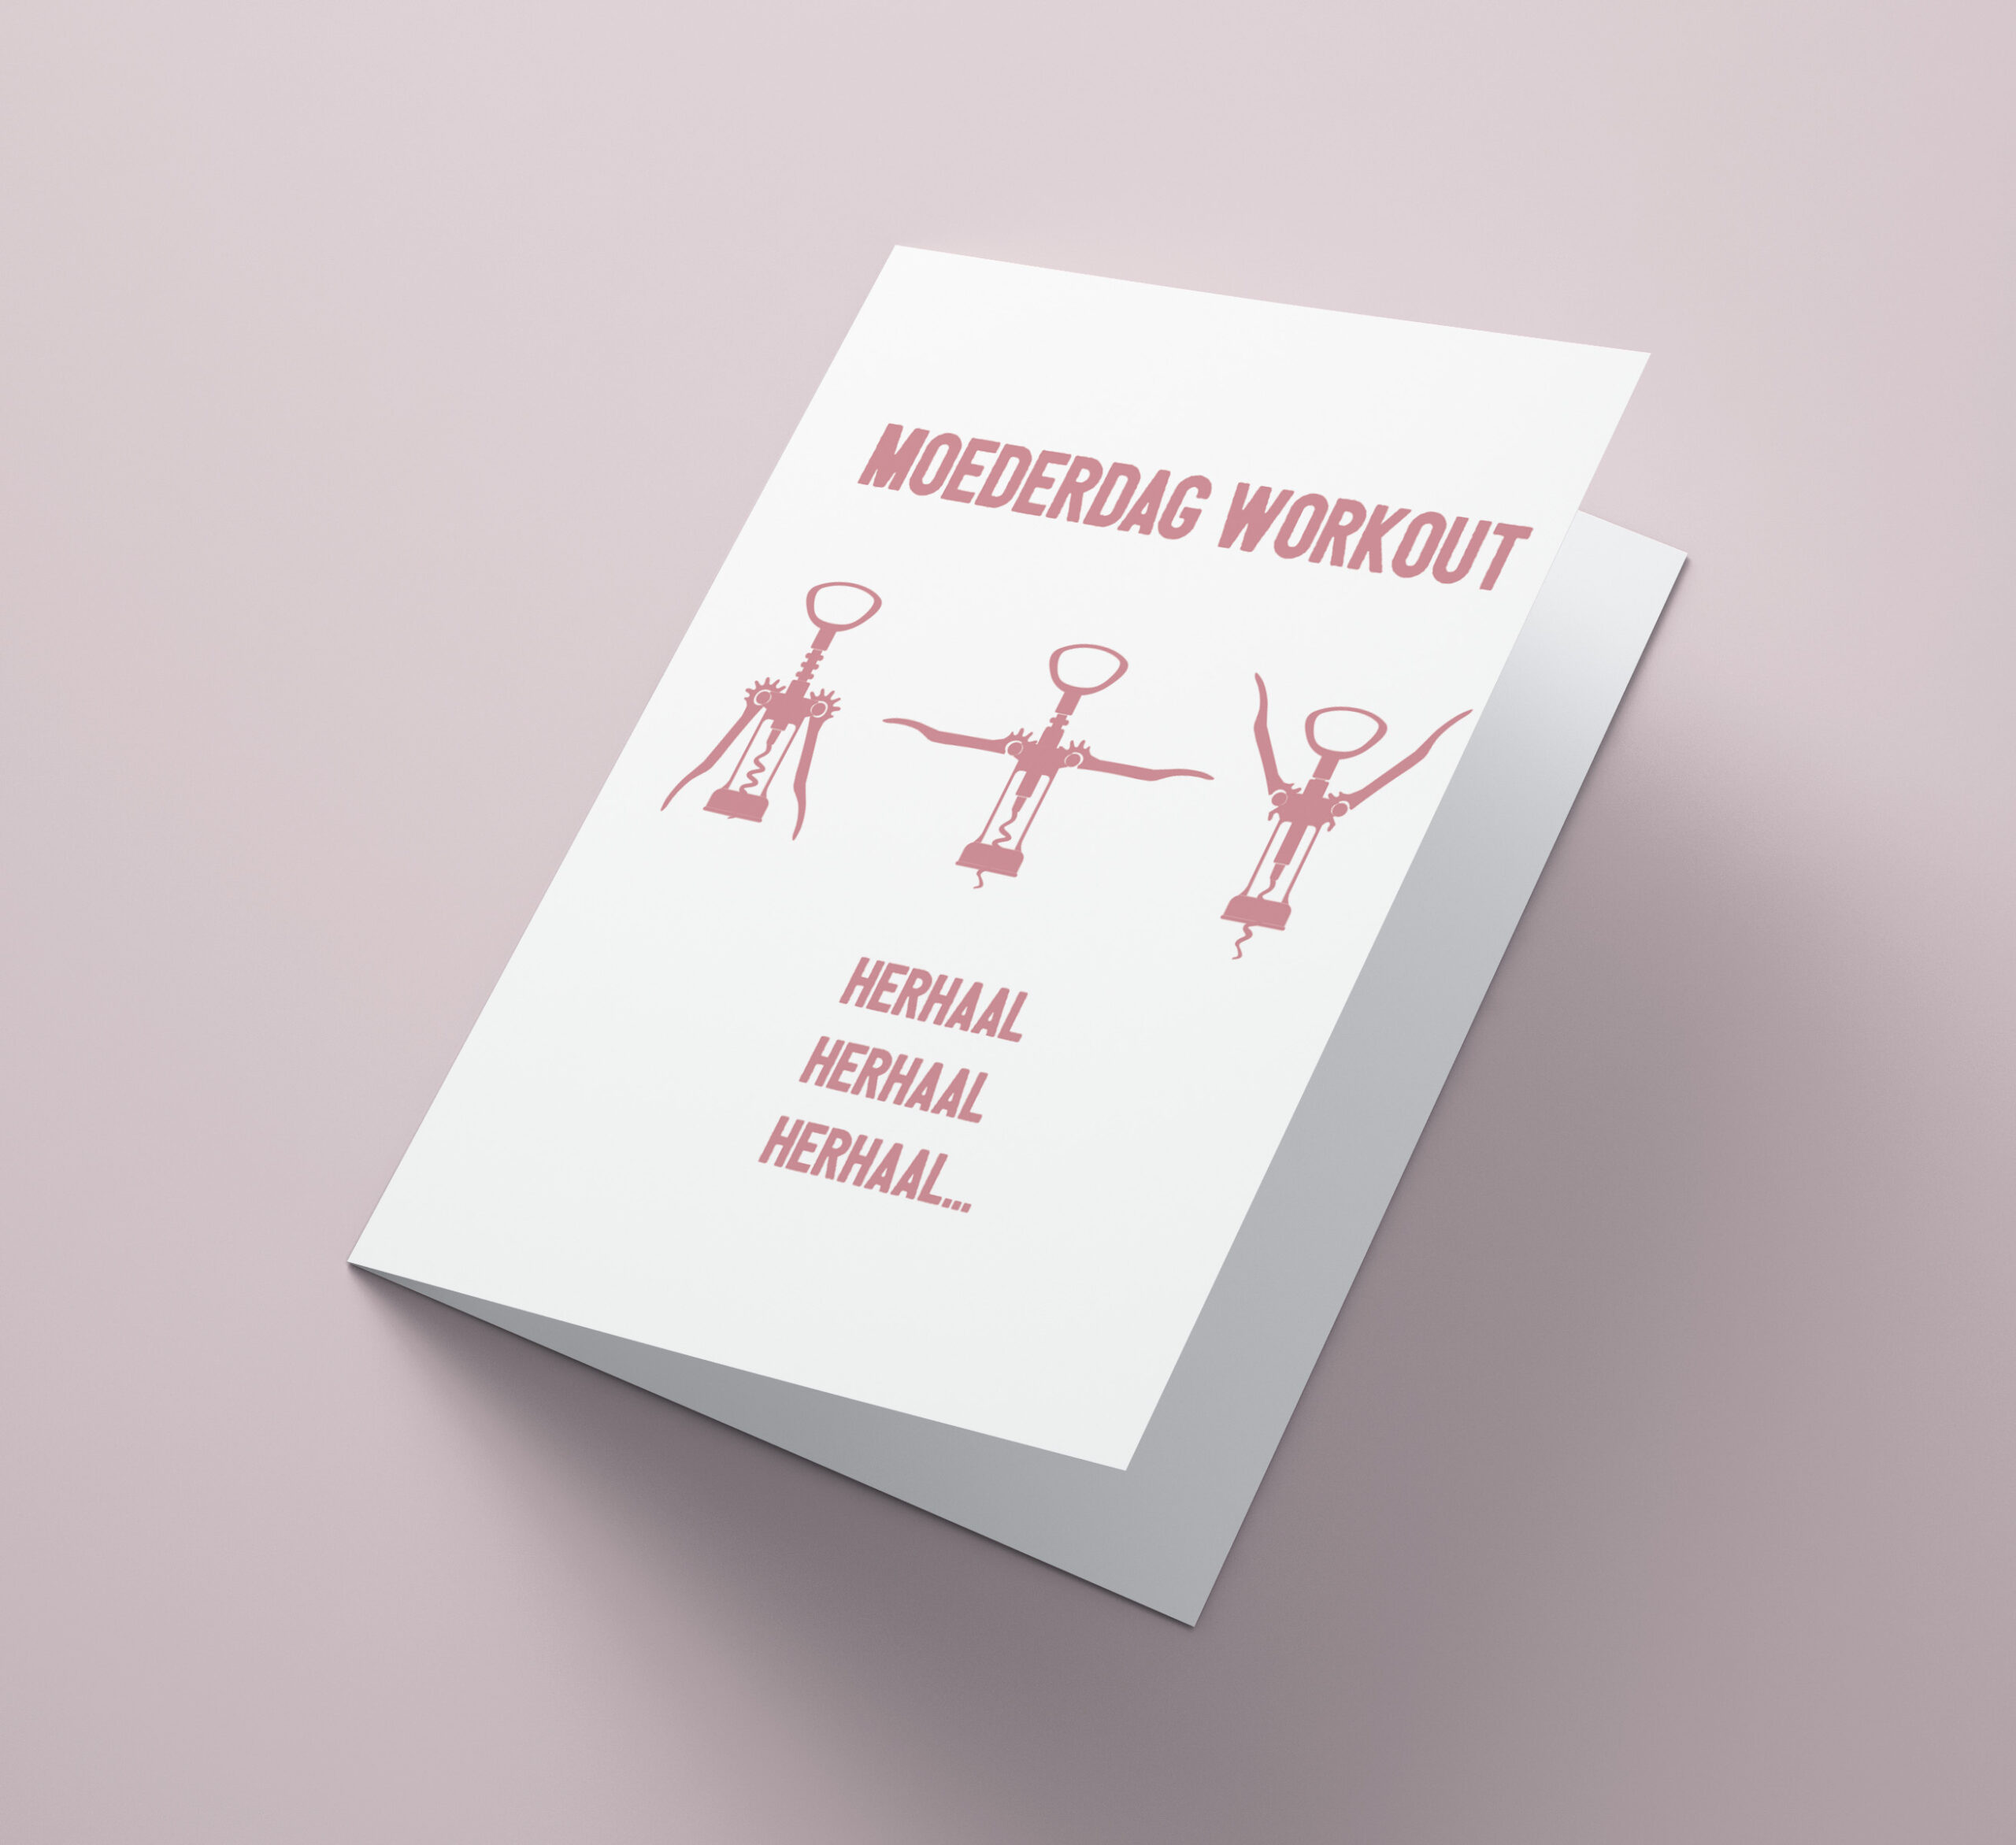 Moederdag Workout